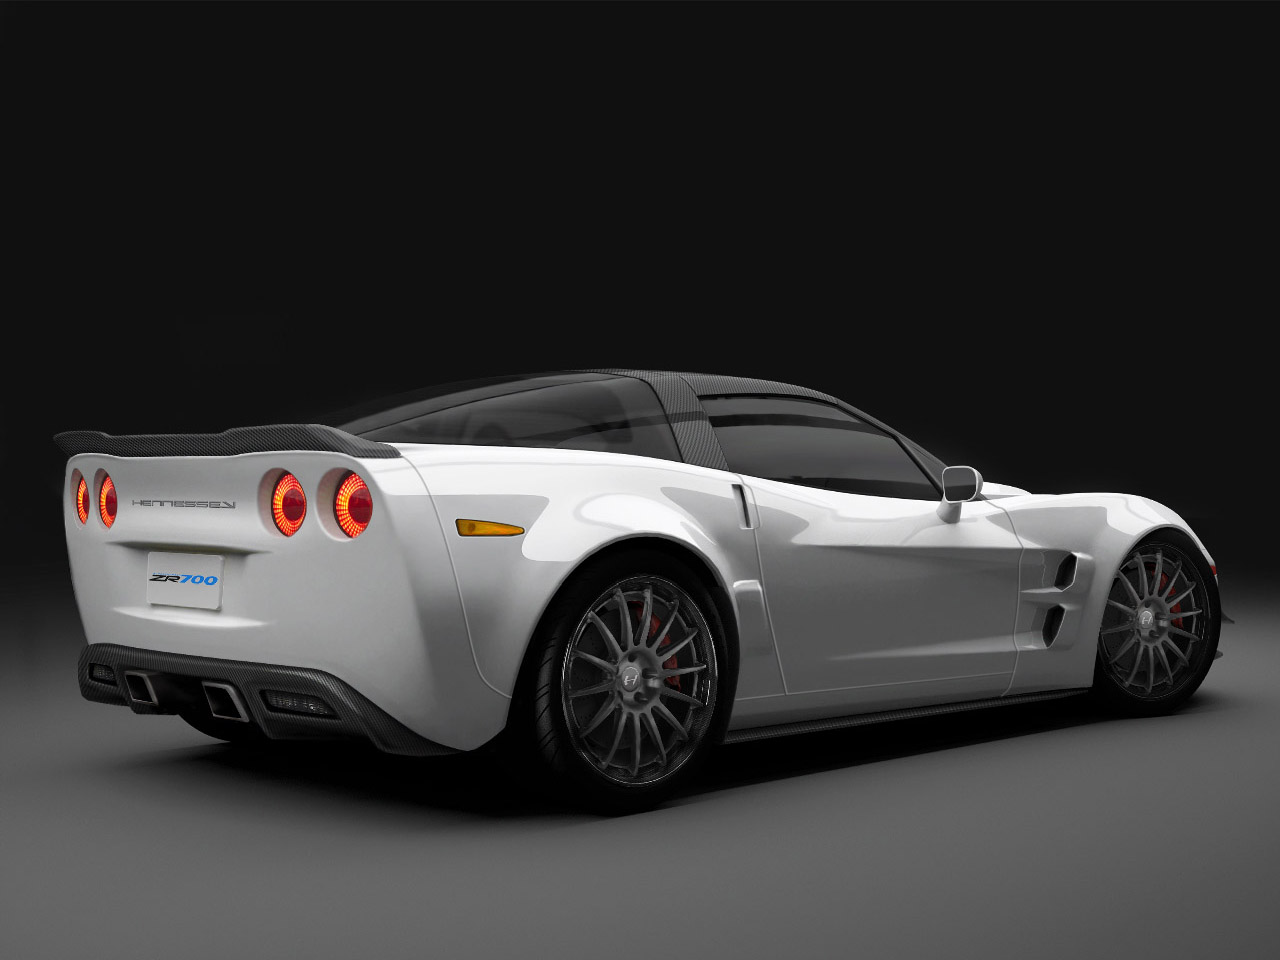 2010 Chevrolet Corvette C6 Zr1 Pictures Information And Specs Auto Database Com